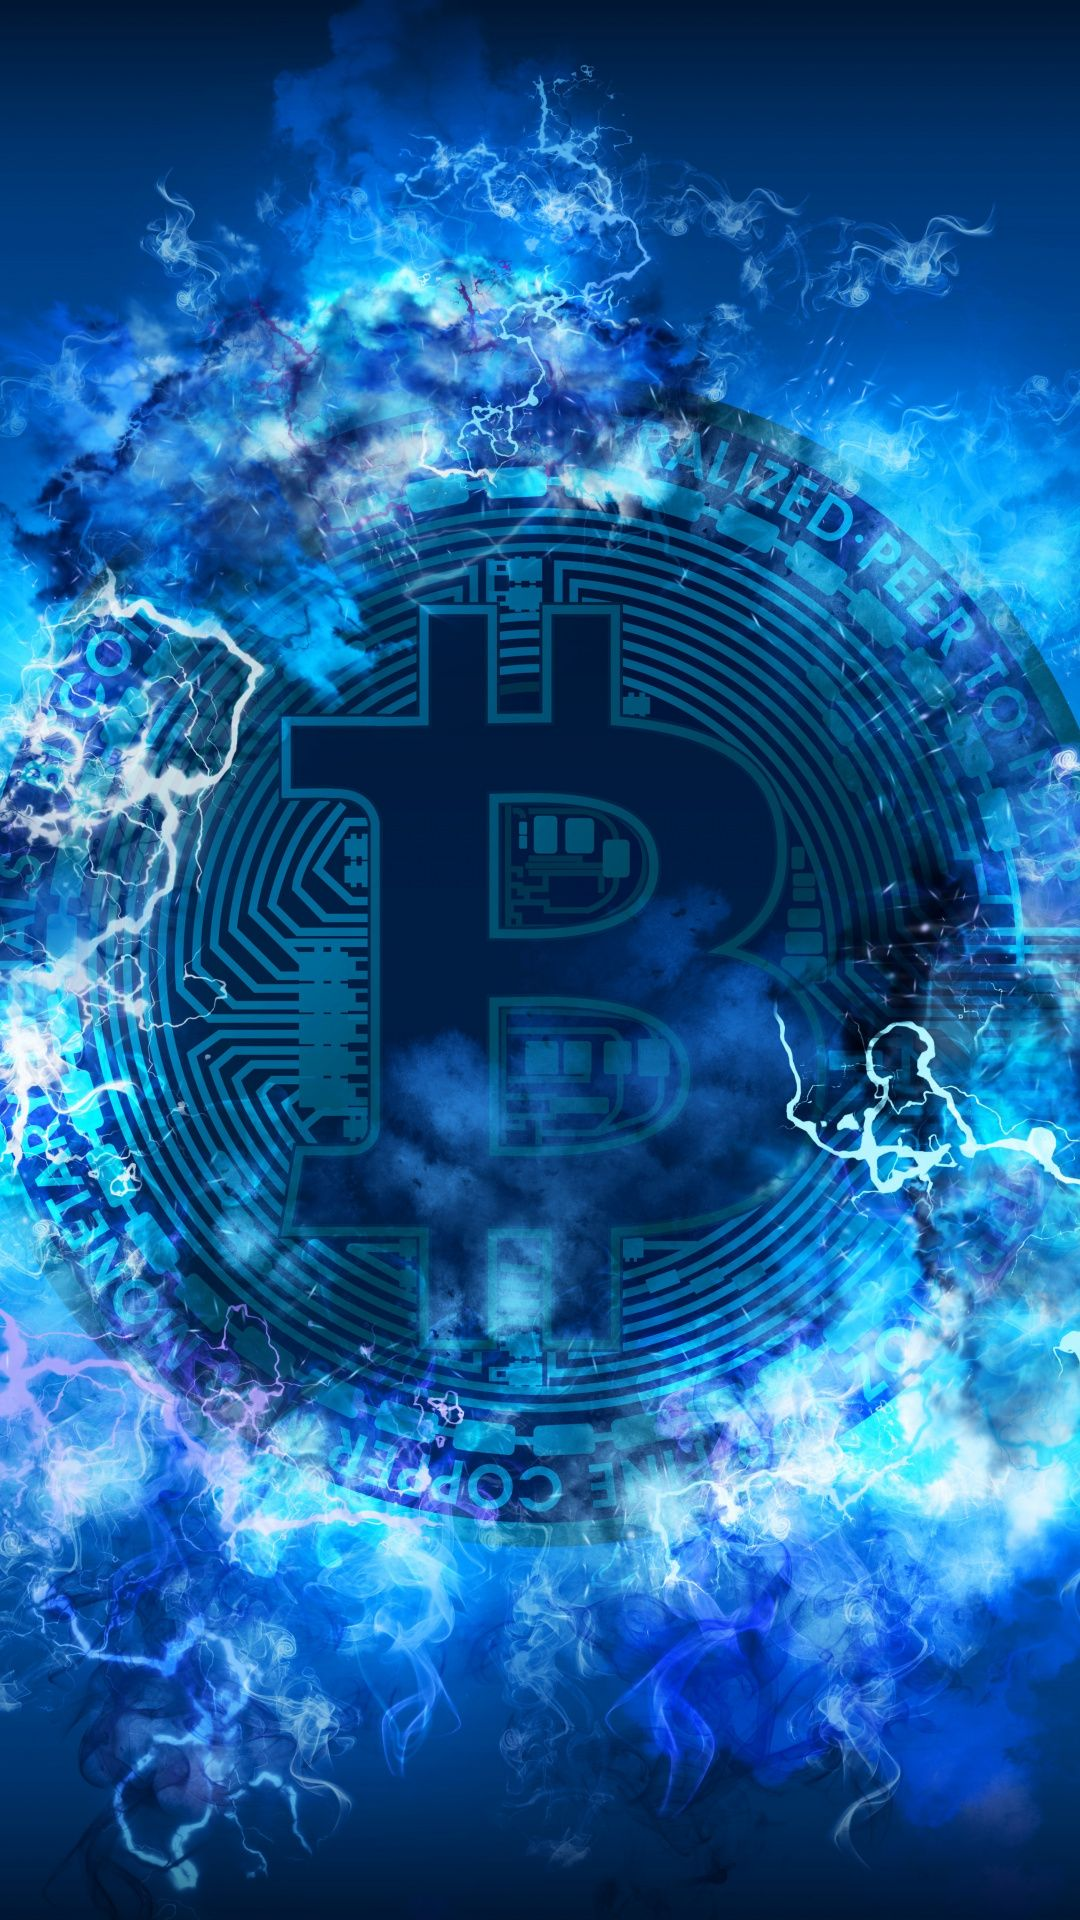 Bitcoin Abstract Crypt Currency Digital Art 1080x1920